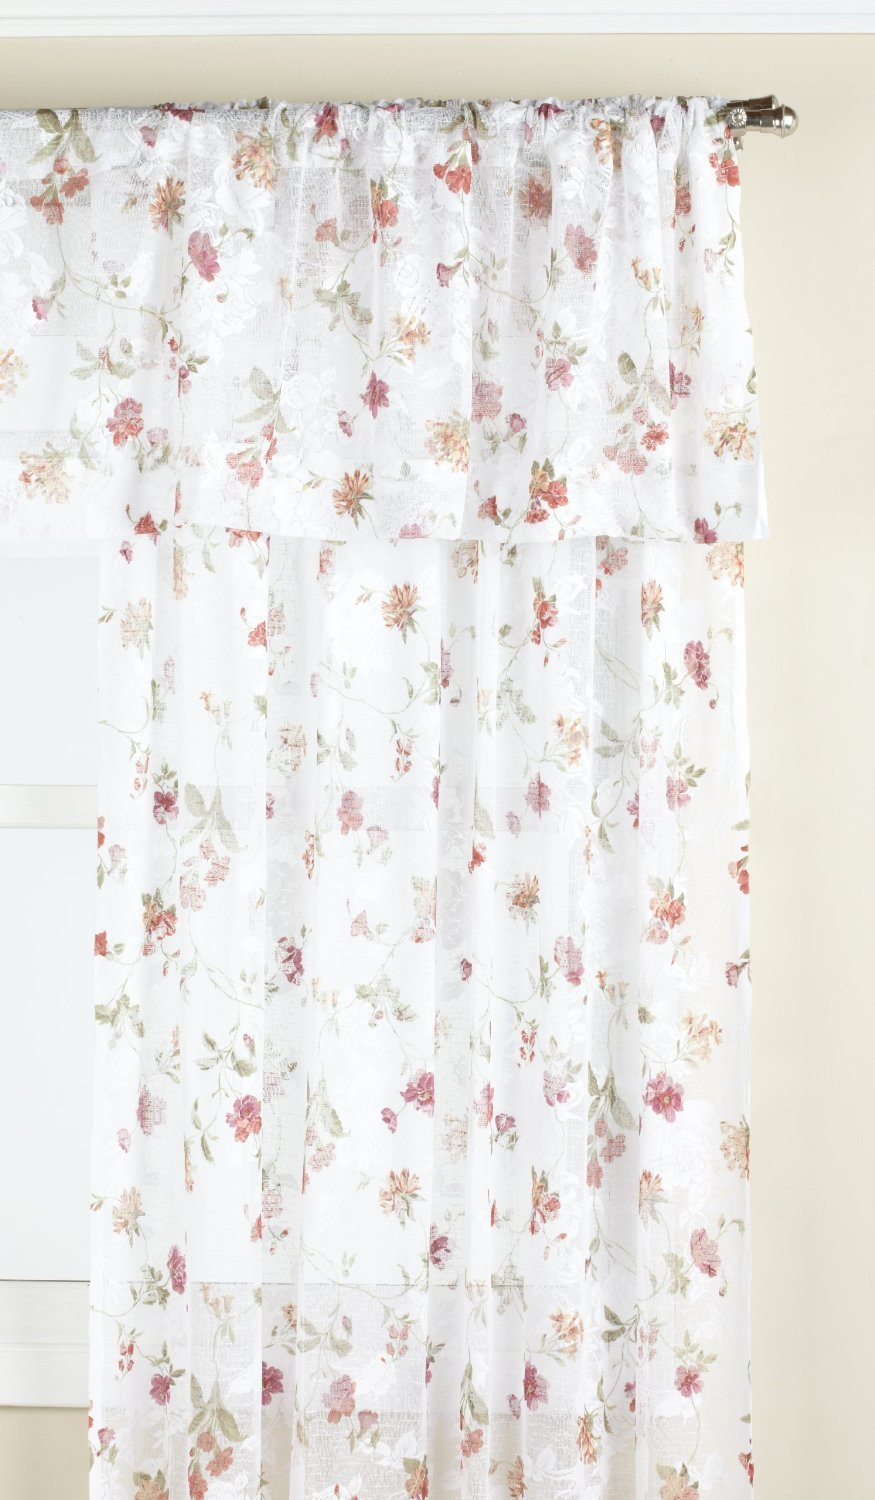 LORRAINE HOME FASHIONS Brewster Tailored Window Curtain Panel Antique 06022-63-00167 51 by 63-Inch